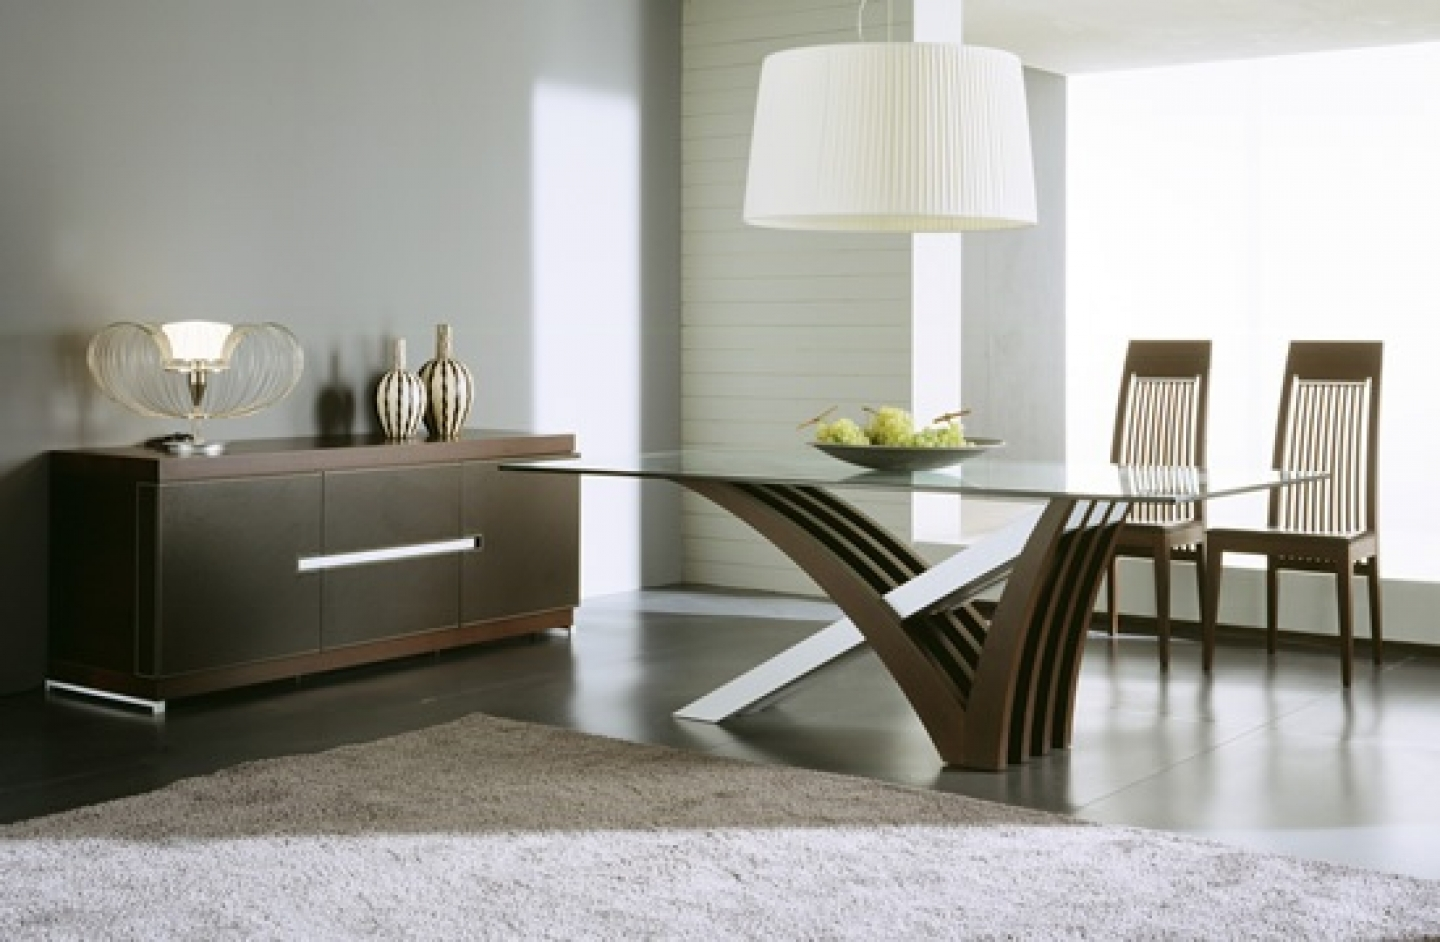 Teak patio furniture at home decor dream house for Modern contemporary dining table